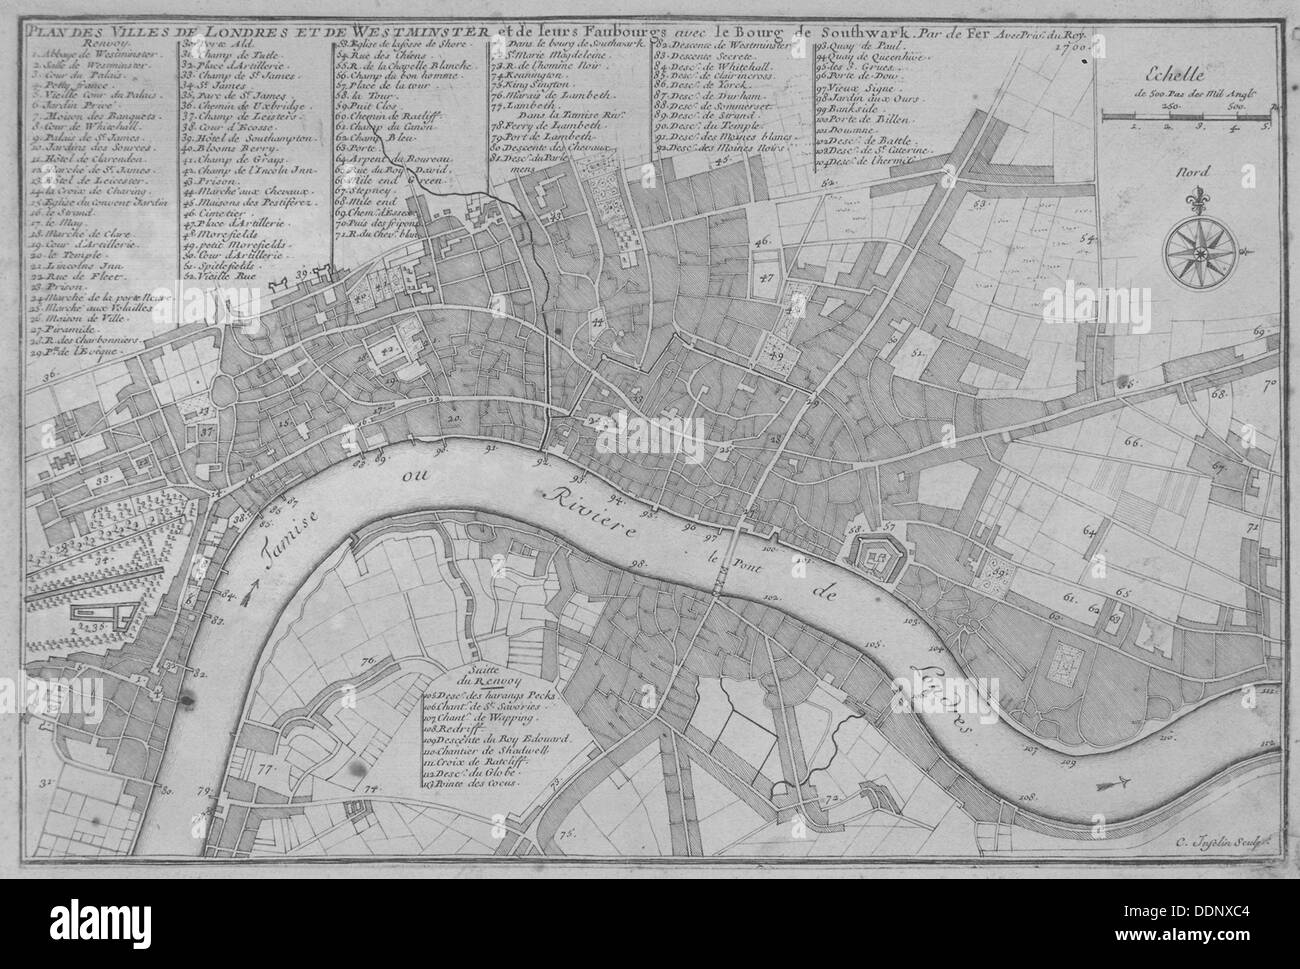 Map of the City of London, the River Thames, the City of Westminster and surrounding areas, 1700. Artist: C Inselin - Stock Image